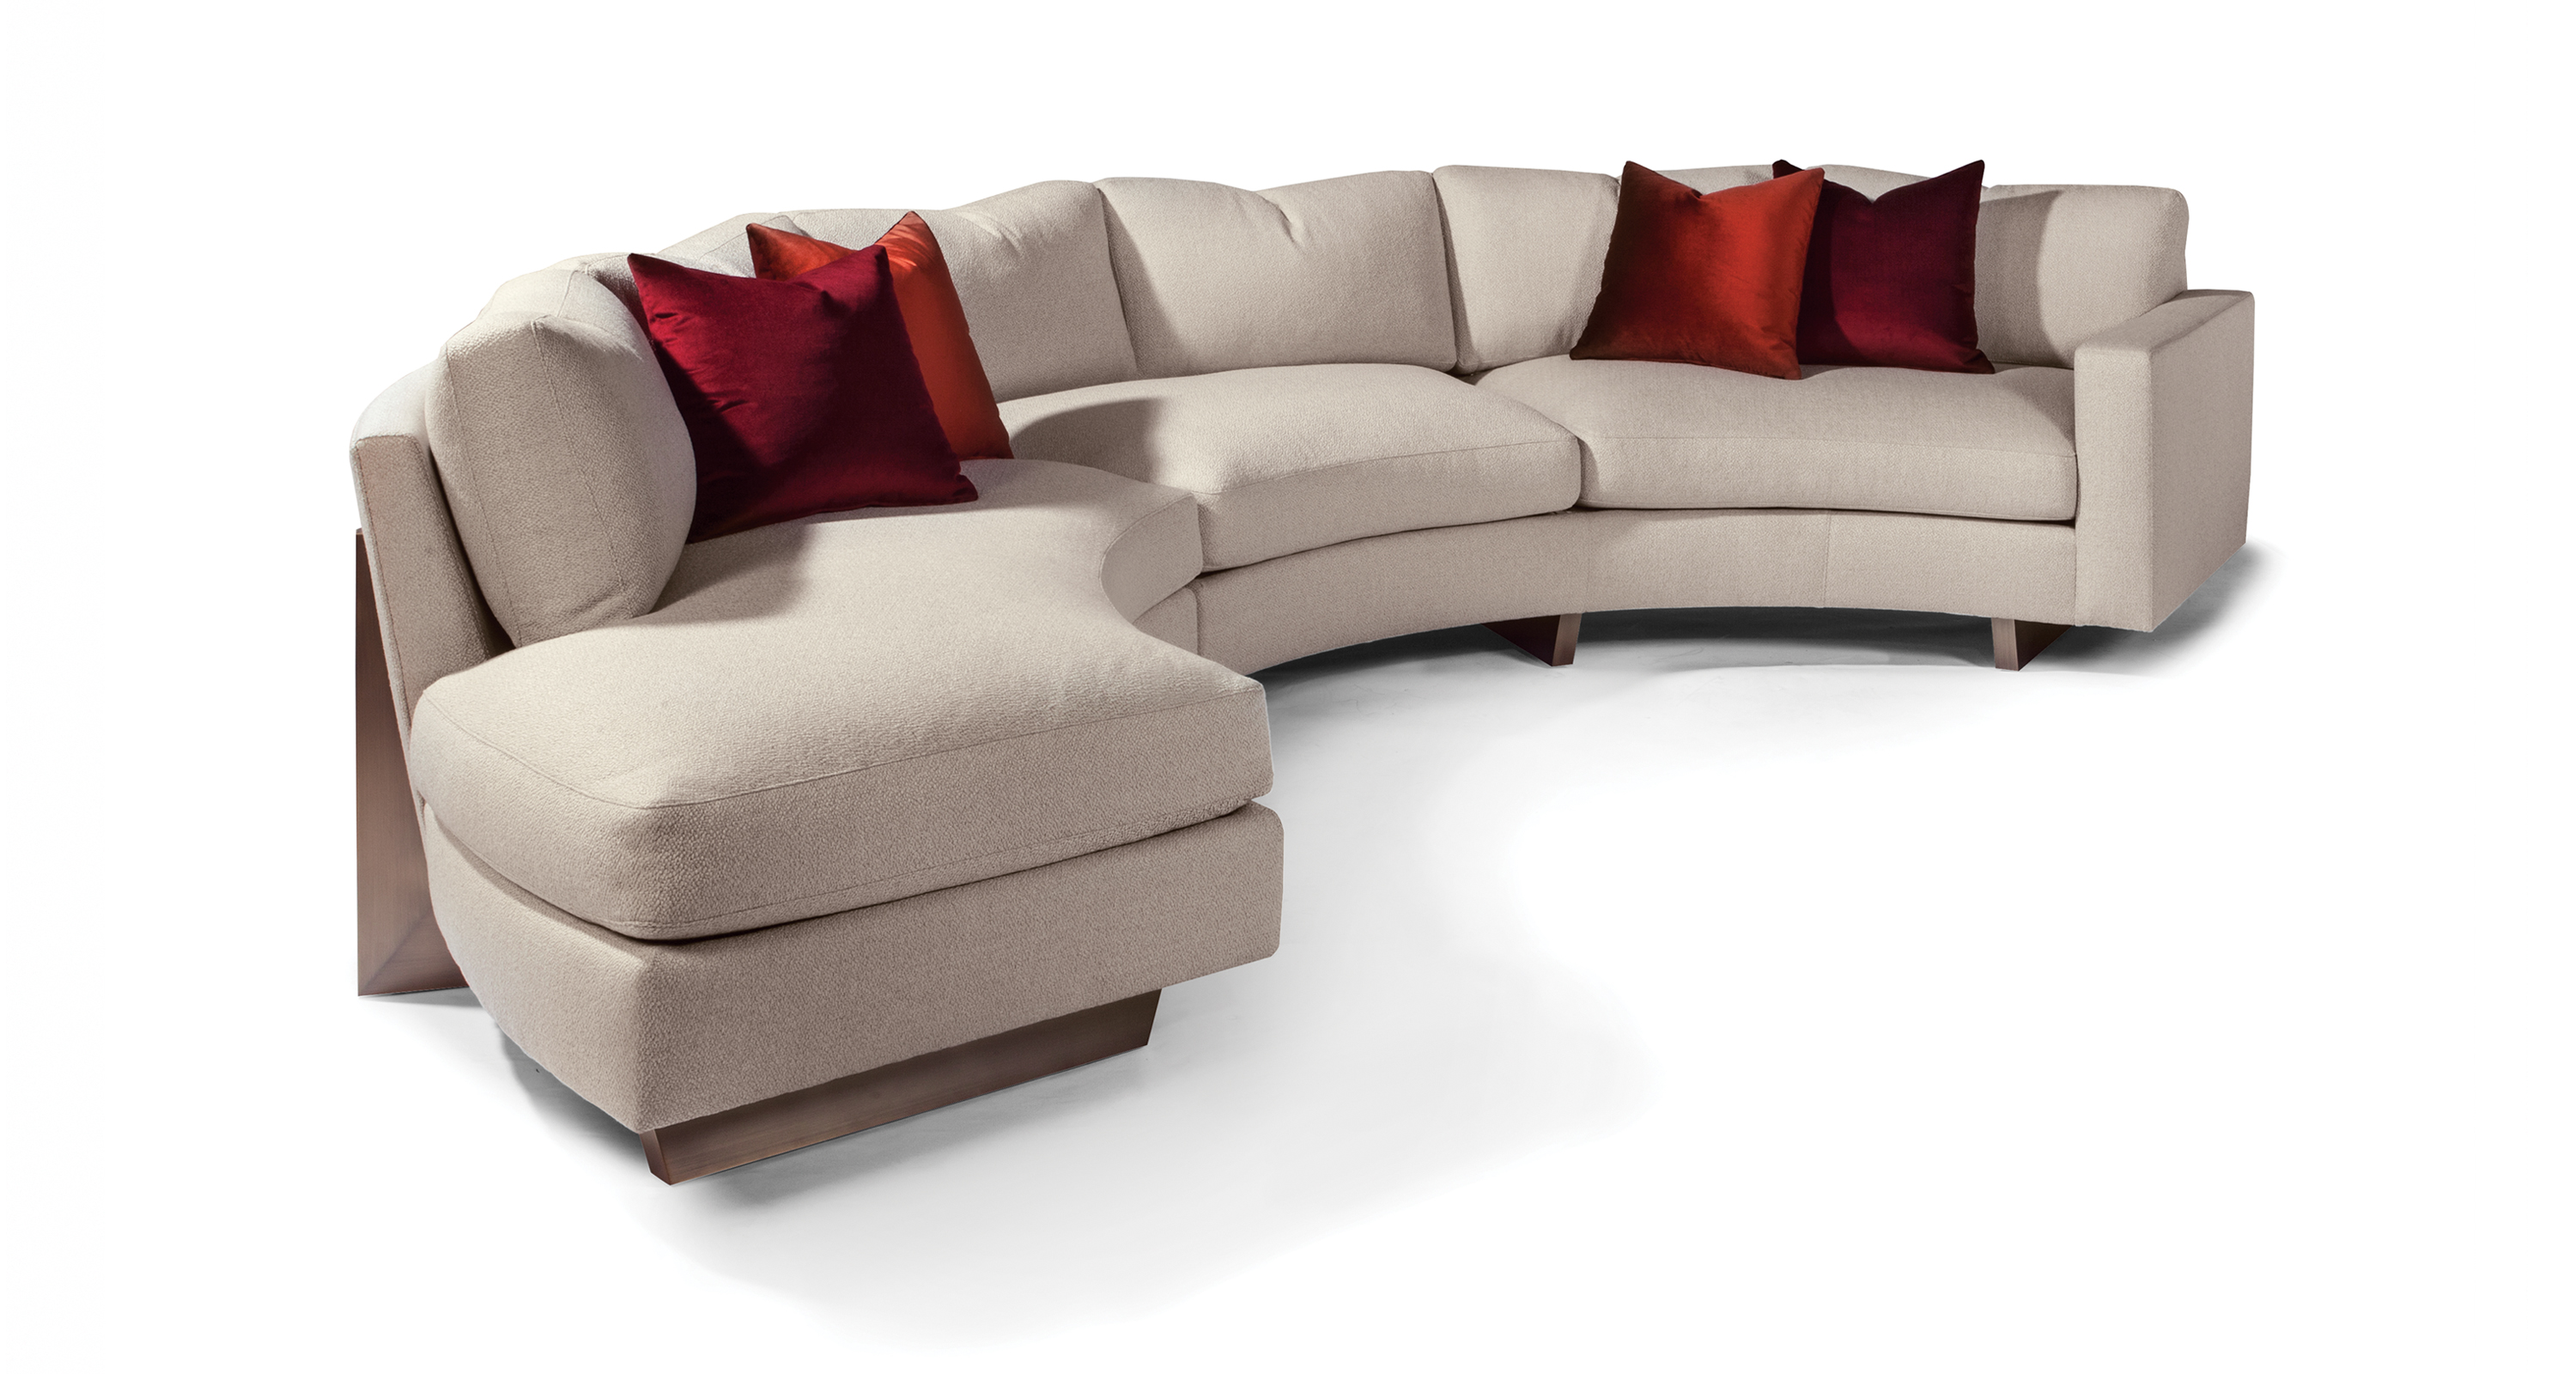 Toasted Clip Sectional